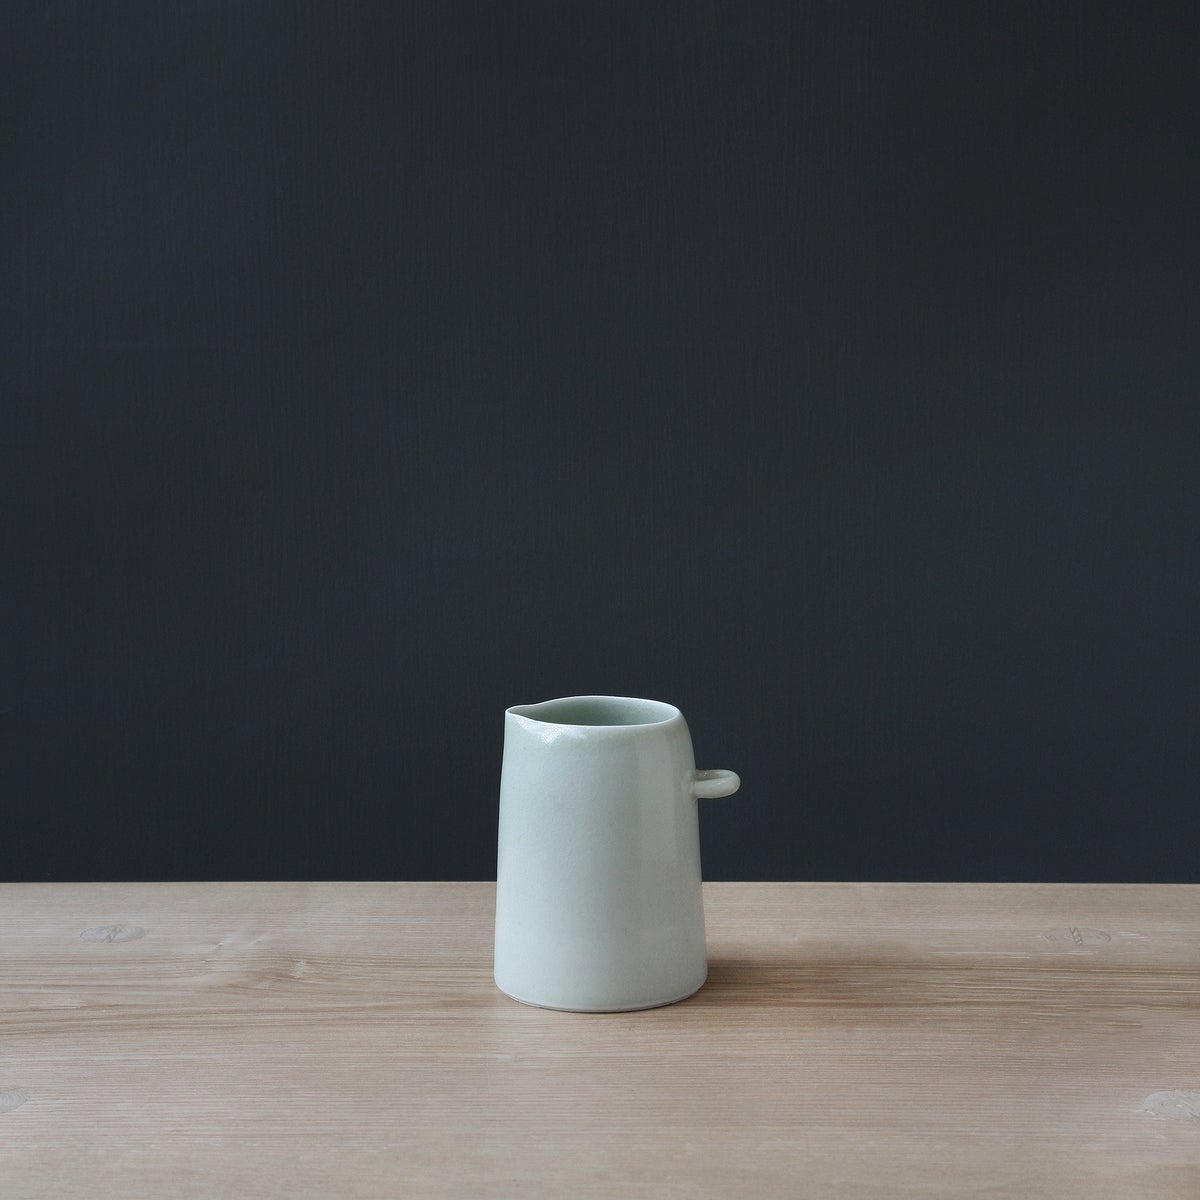 Image of Small Green Crackle/Celadon Jug by Elaine Bolt